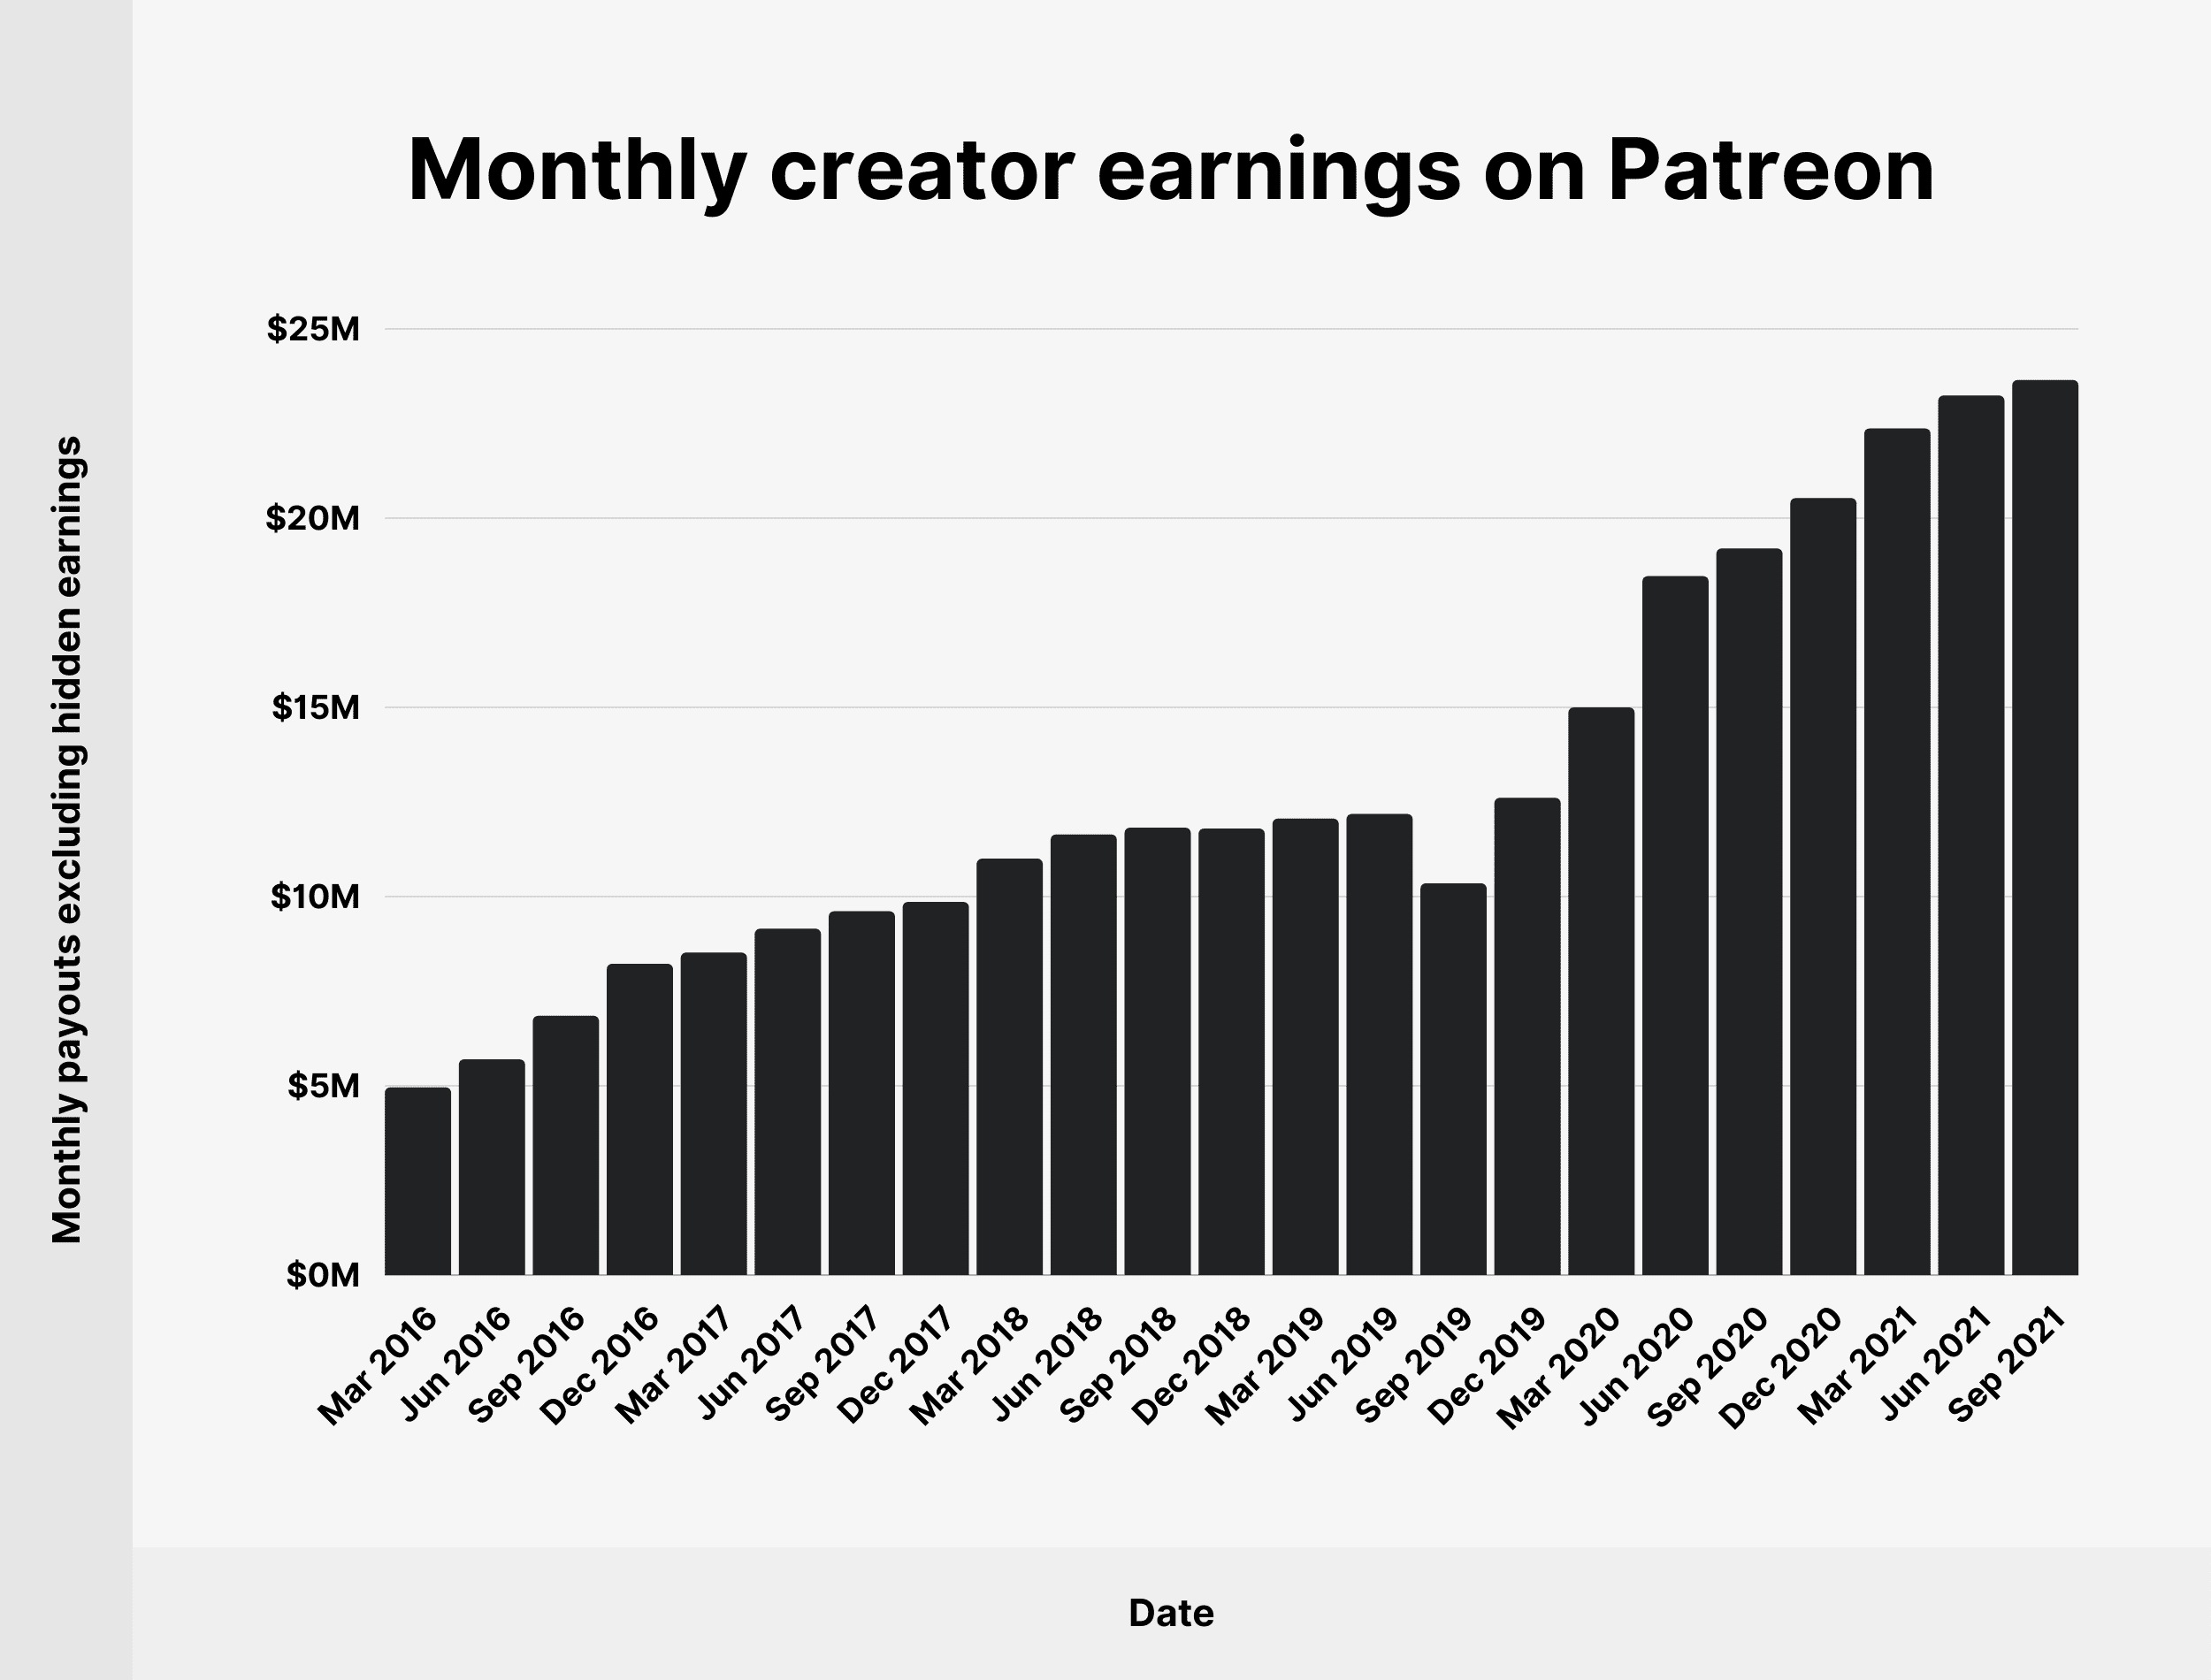 Monthly creator earnings on Patreon